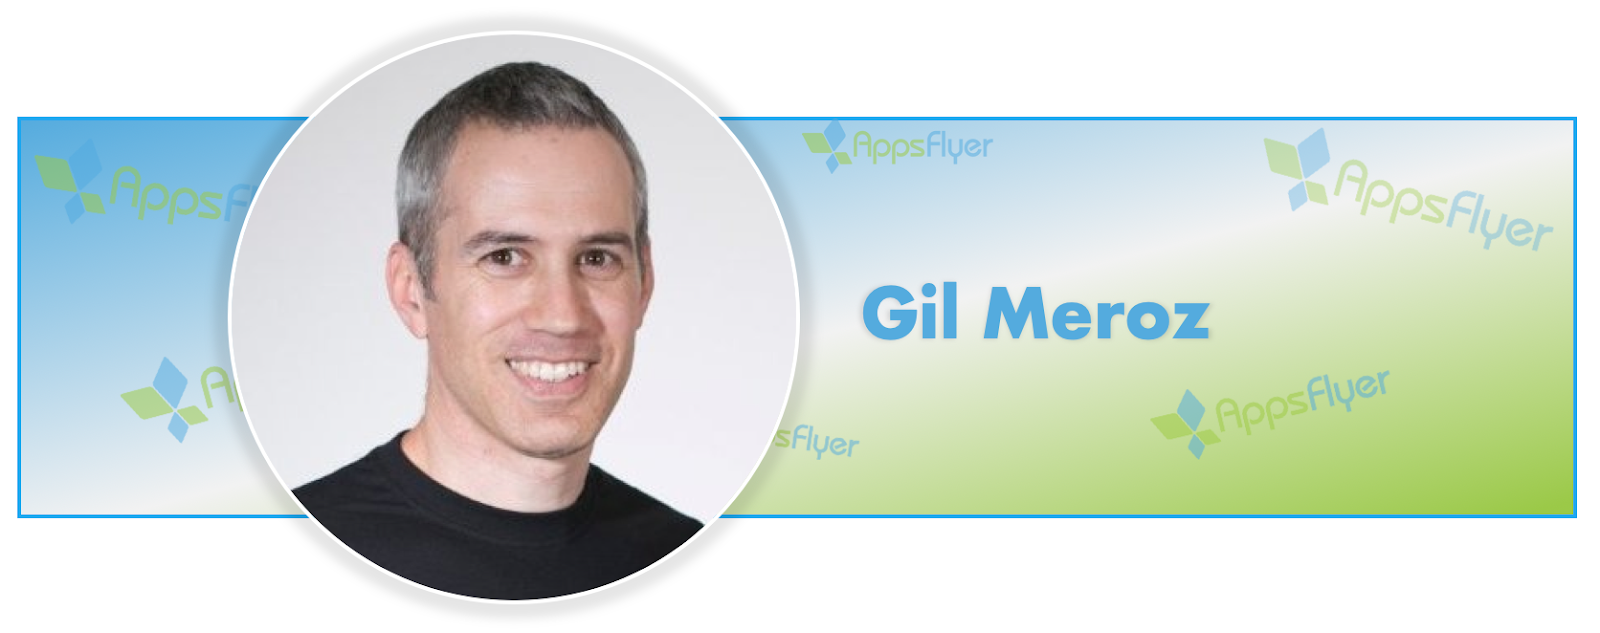 Gil Meroz, AppsFlyer - the mobile spoon